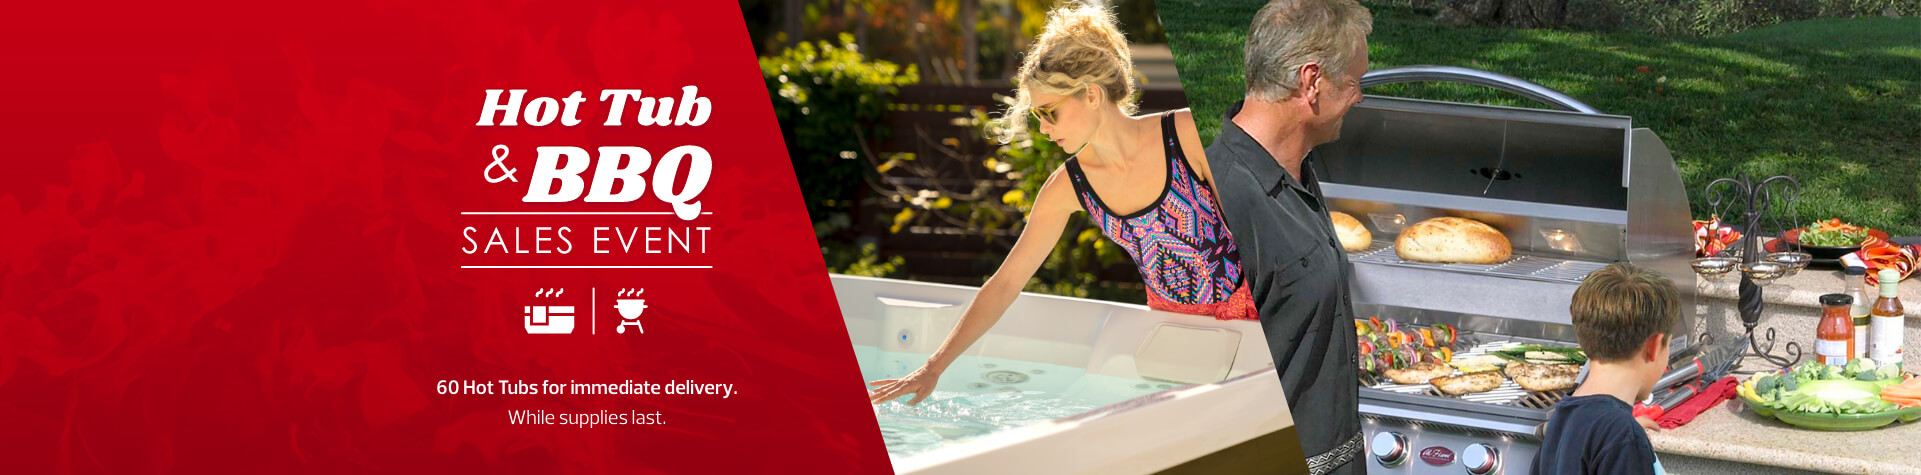 Hot-Tub-BBQ-Sales-Event-Banner